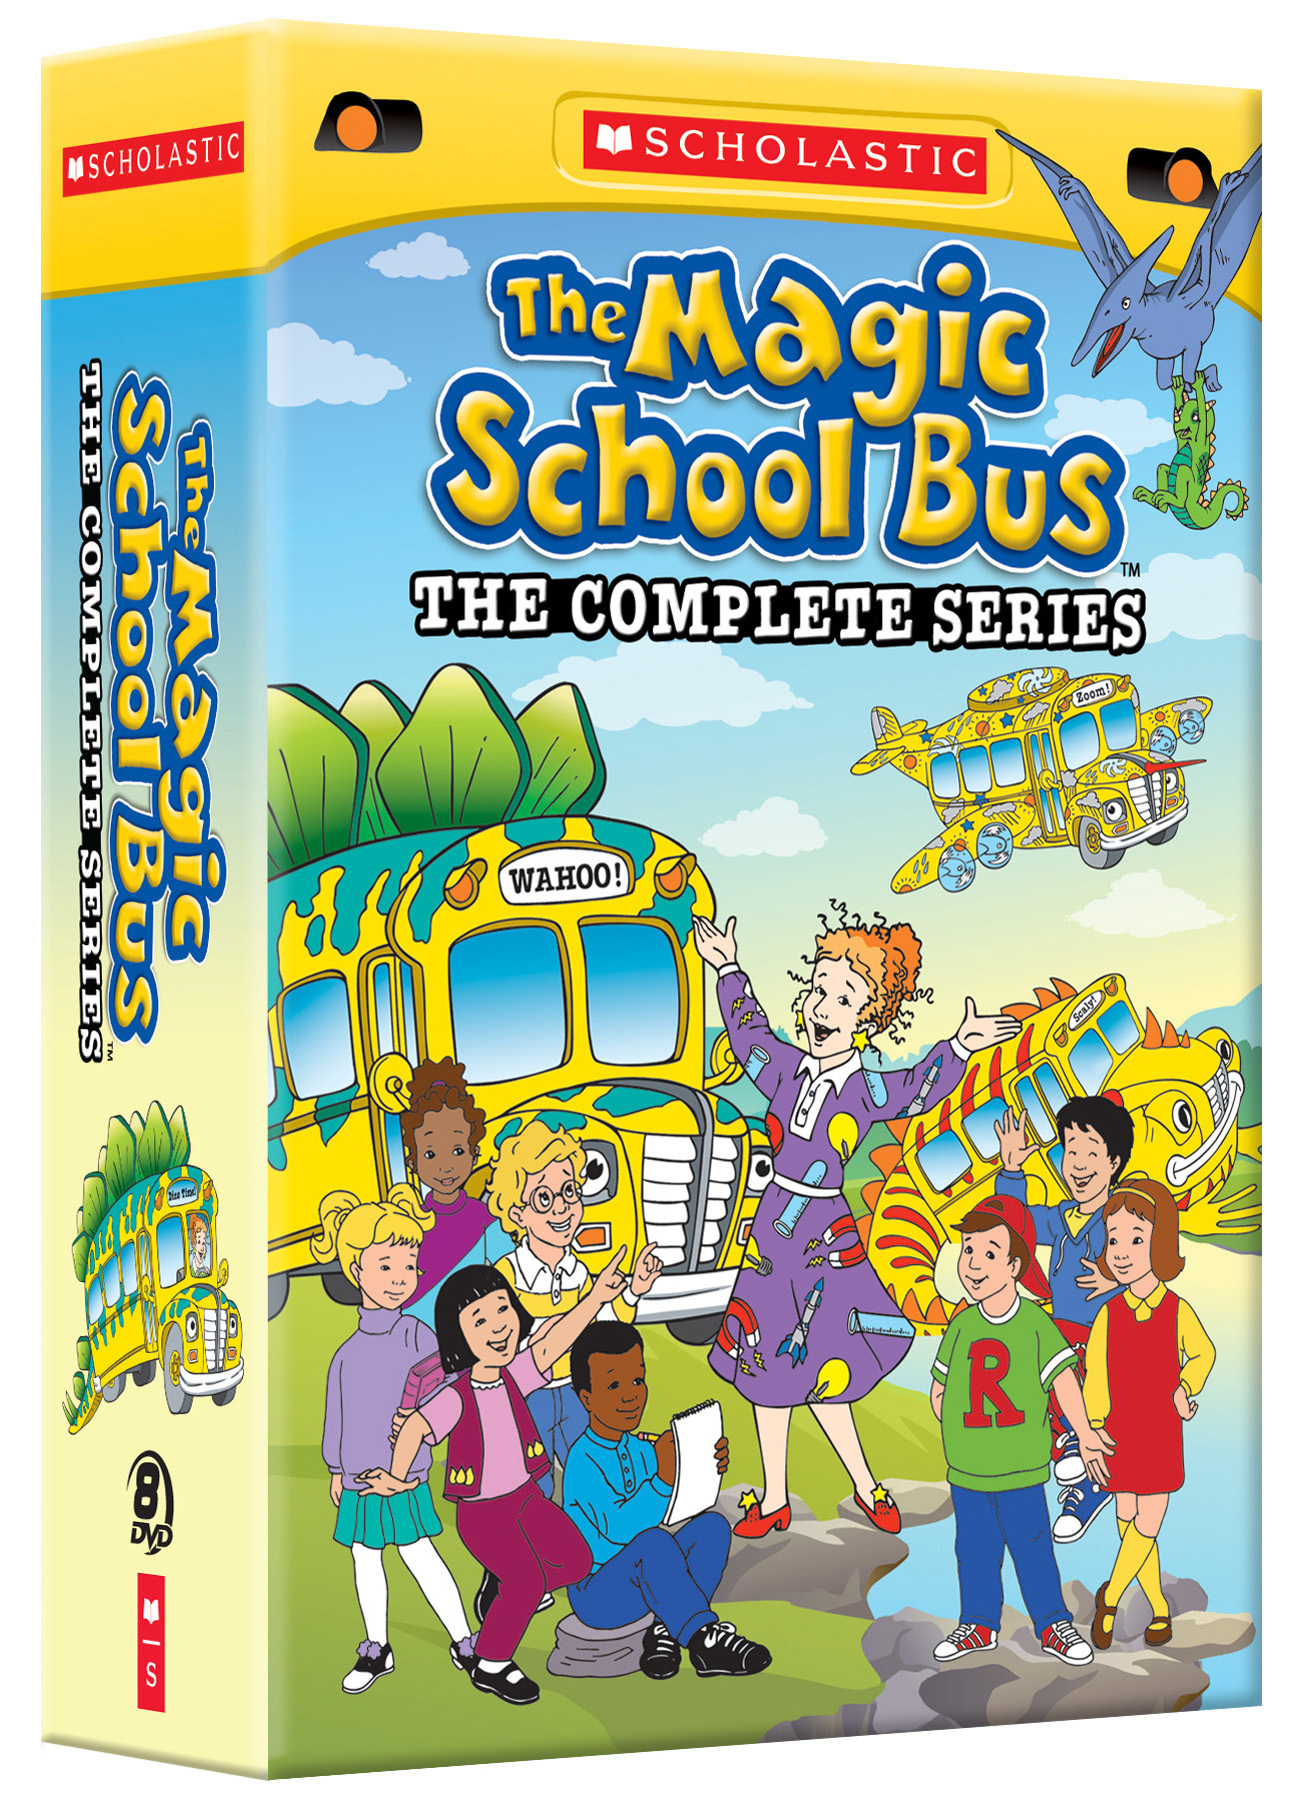 The Magic School Bus Complete Series 1-4 DVD Boxset